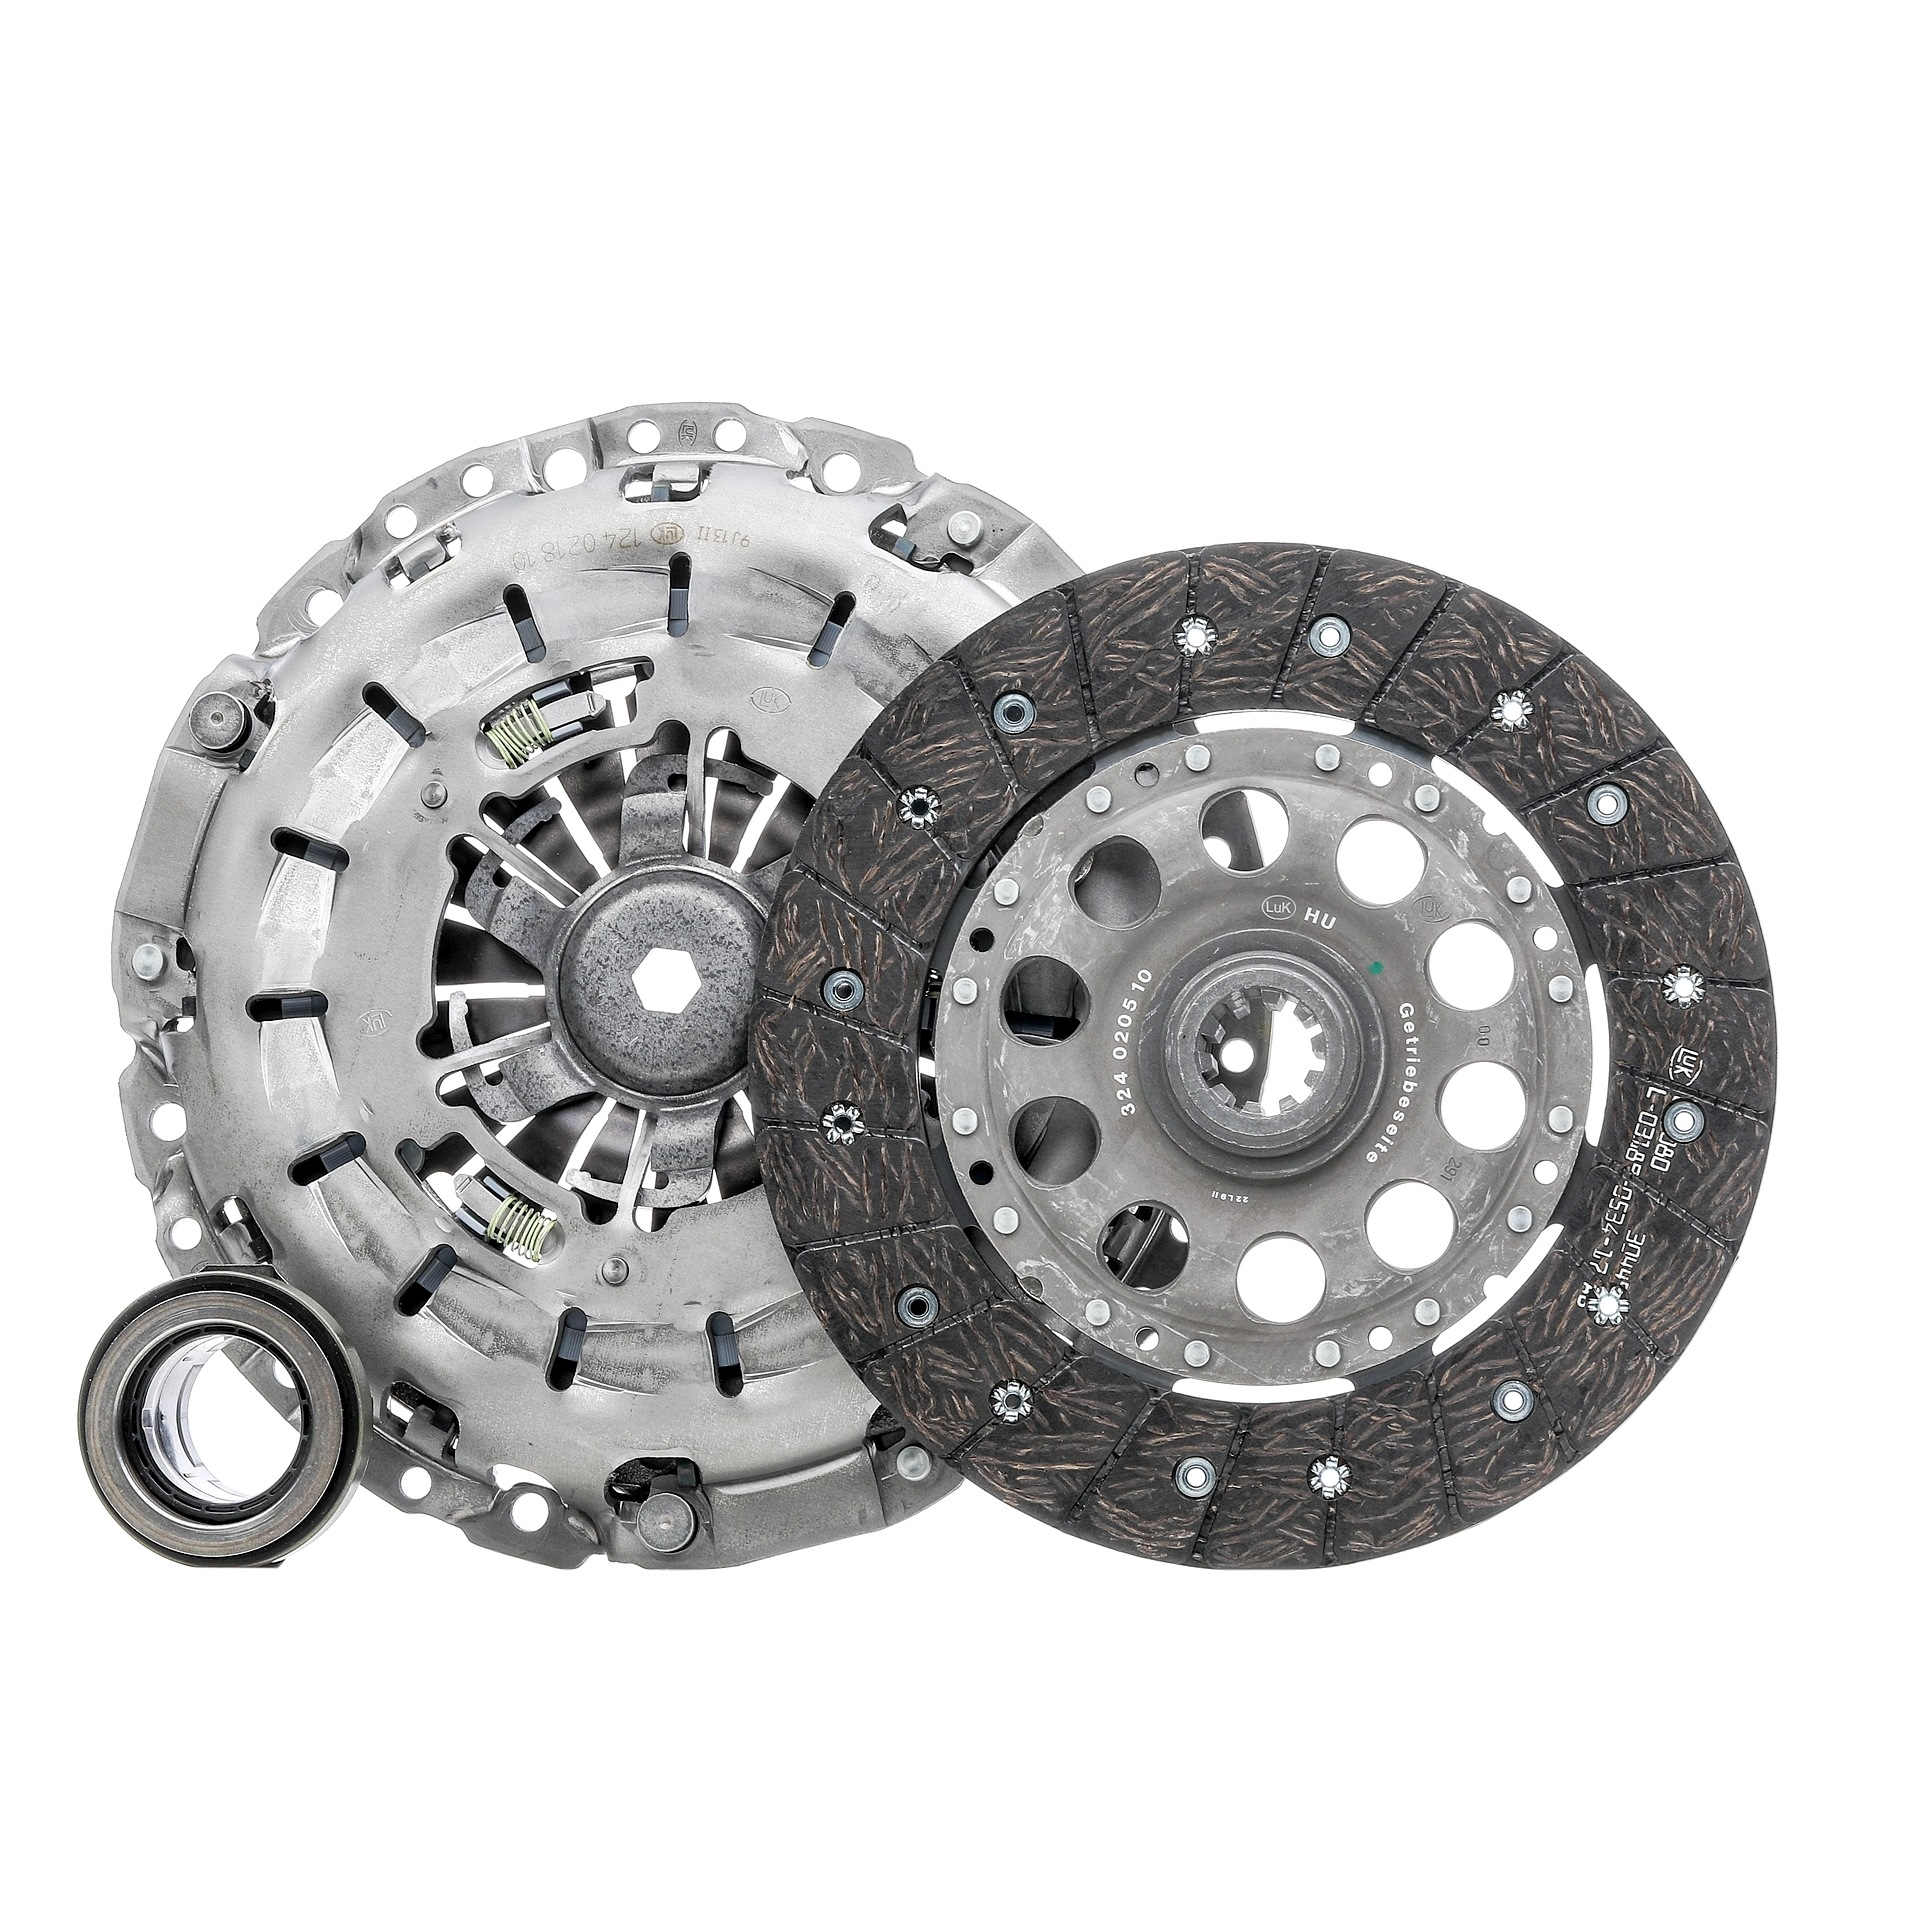 BMW Z3 1998 Clutch kit LuK 624 2333 00: for engines with dual-mass flywheel, Check and replace dual-mass flywheel if necessary., Requires special tools for mounting, with clutch release bearing